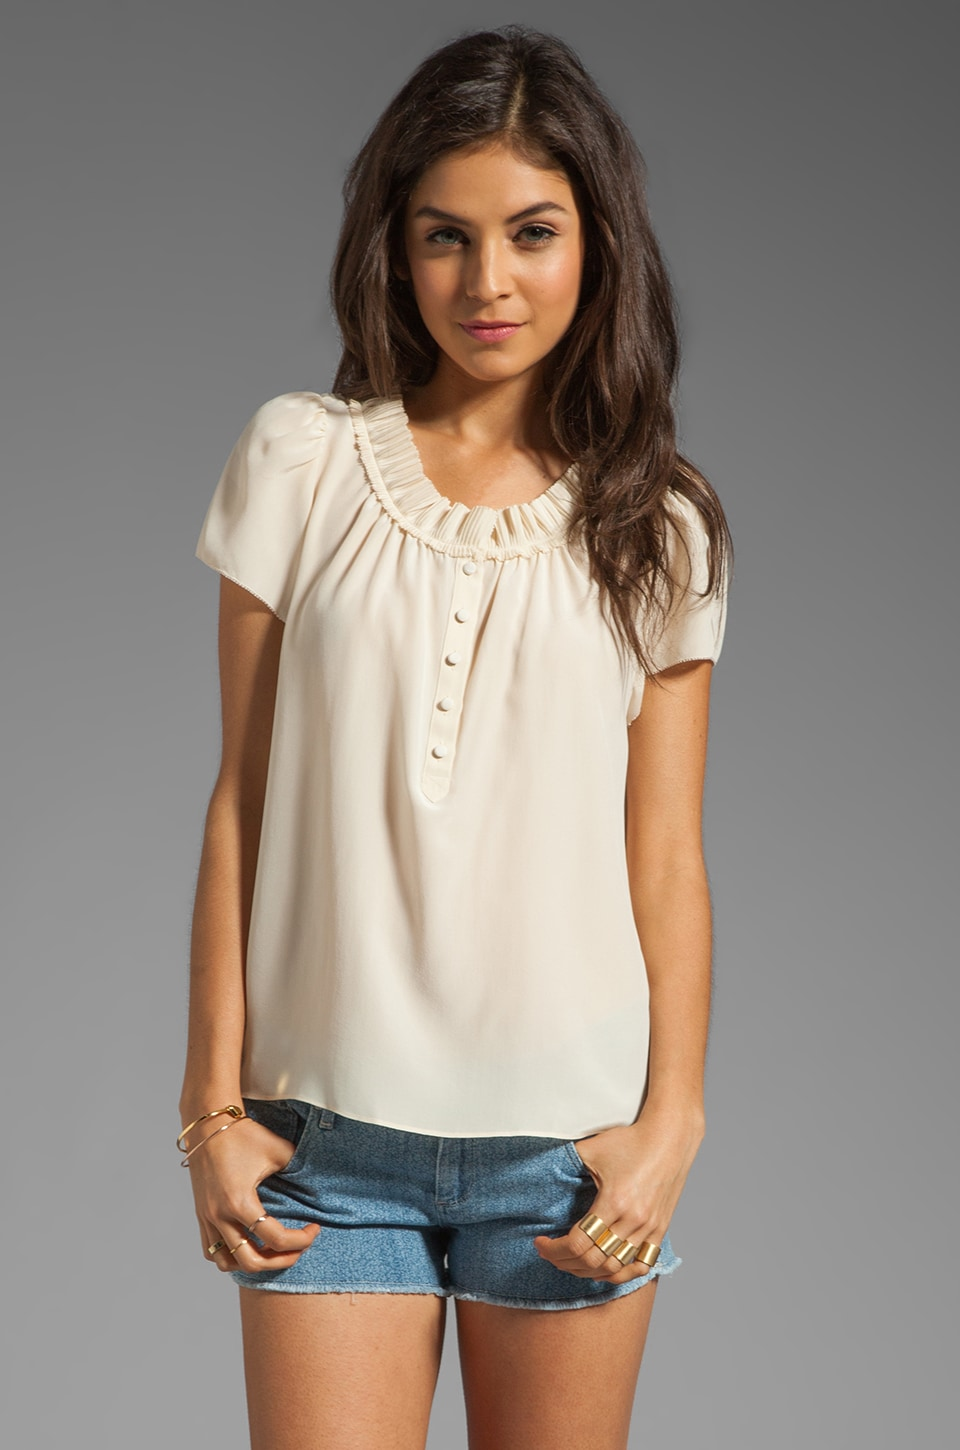 Marc by Marc Jacobs Bowery CDC Top in Tapioca